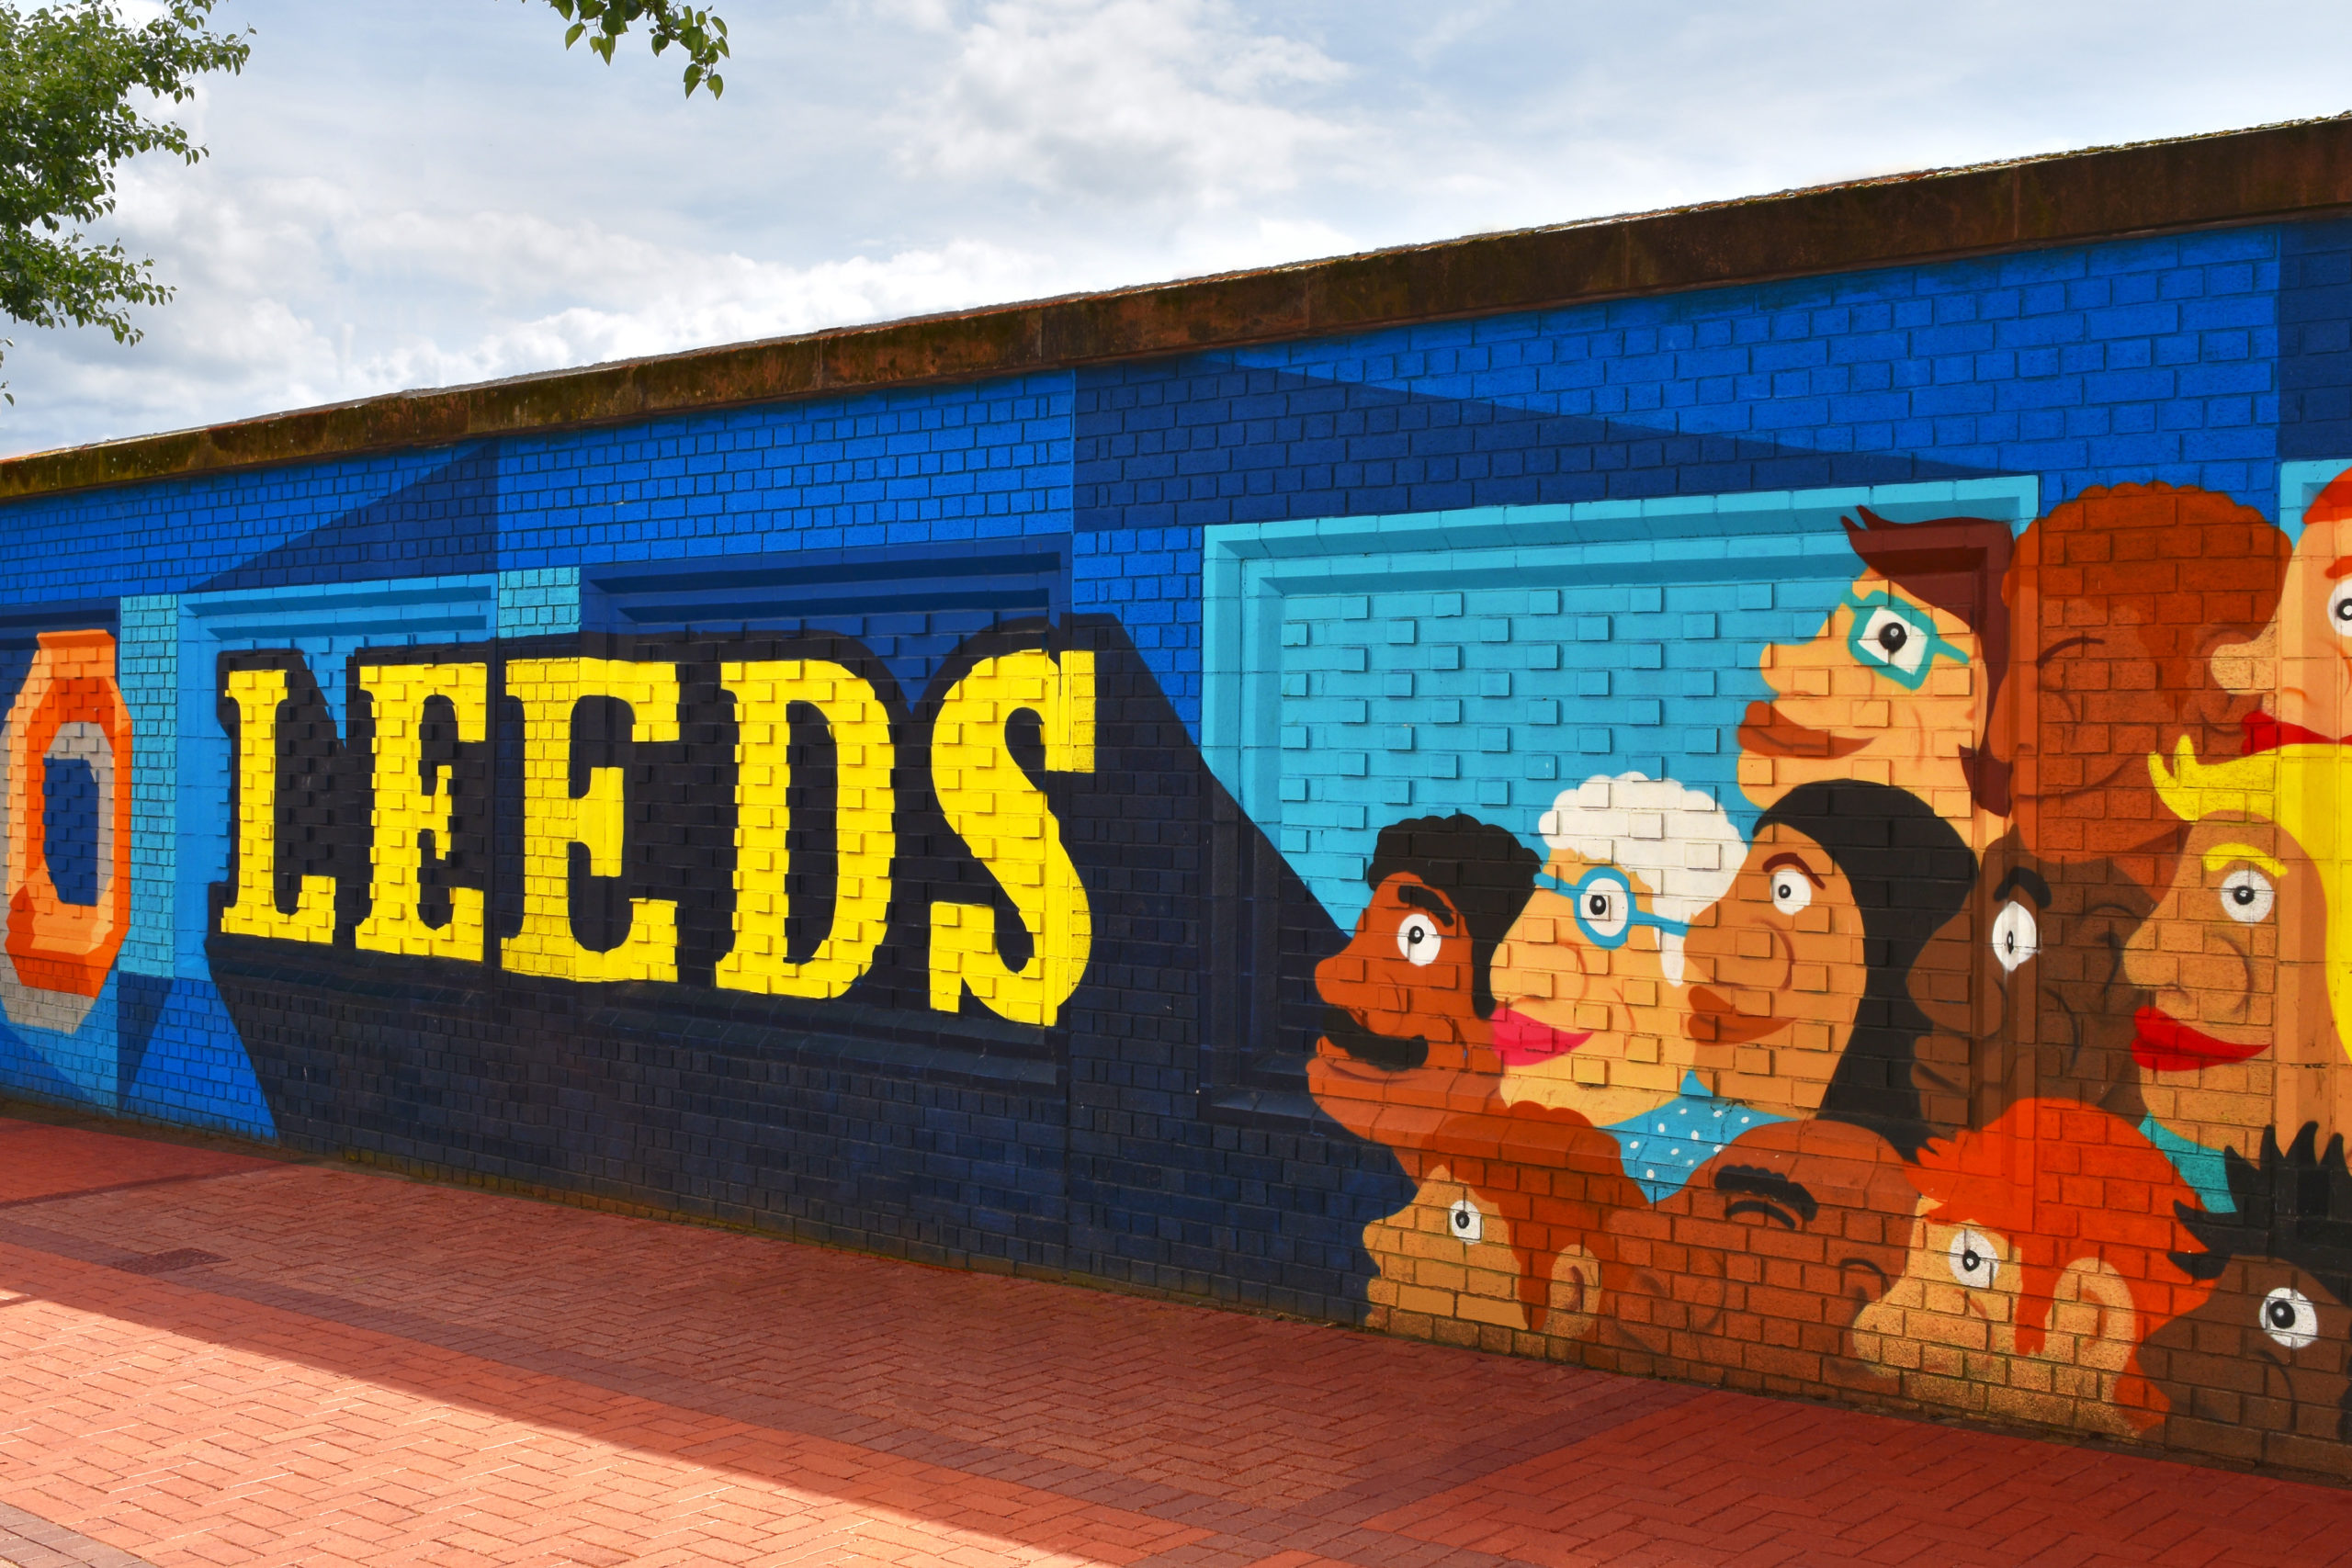 Mural, Leeds in yellow on blue background with faces